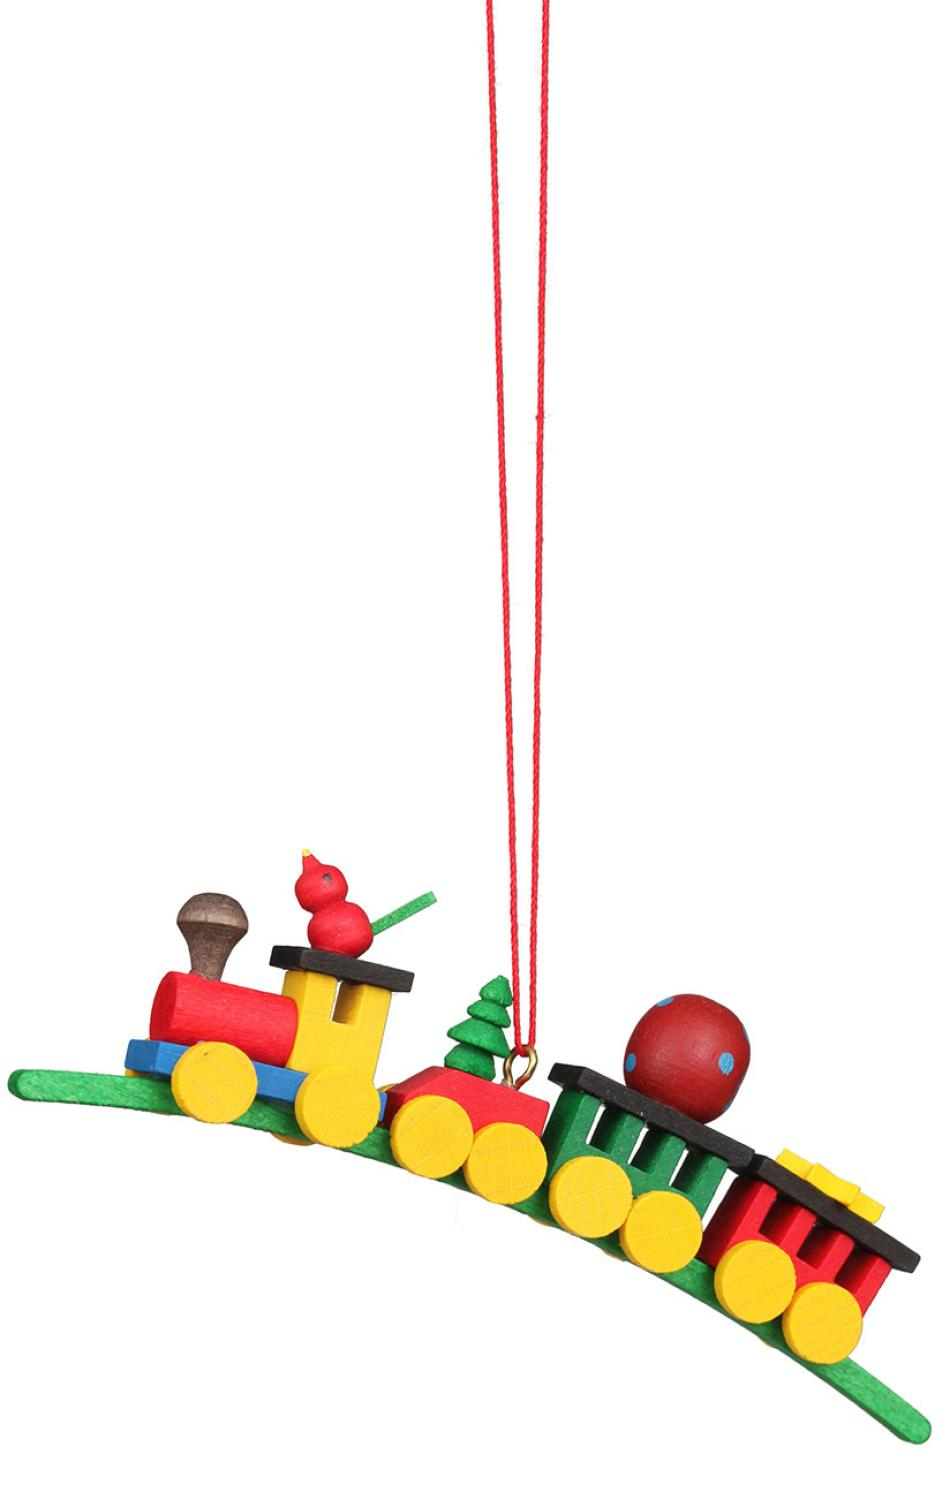 10-0137 - Christian Ulbricht Ornament - Train on Arch - 1.5